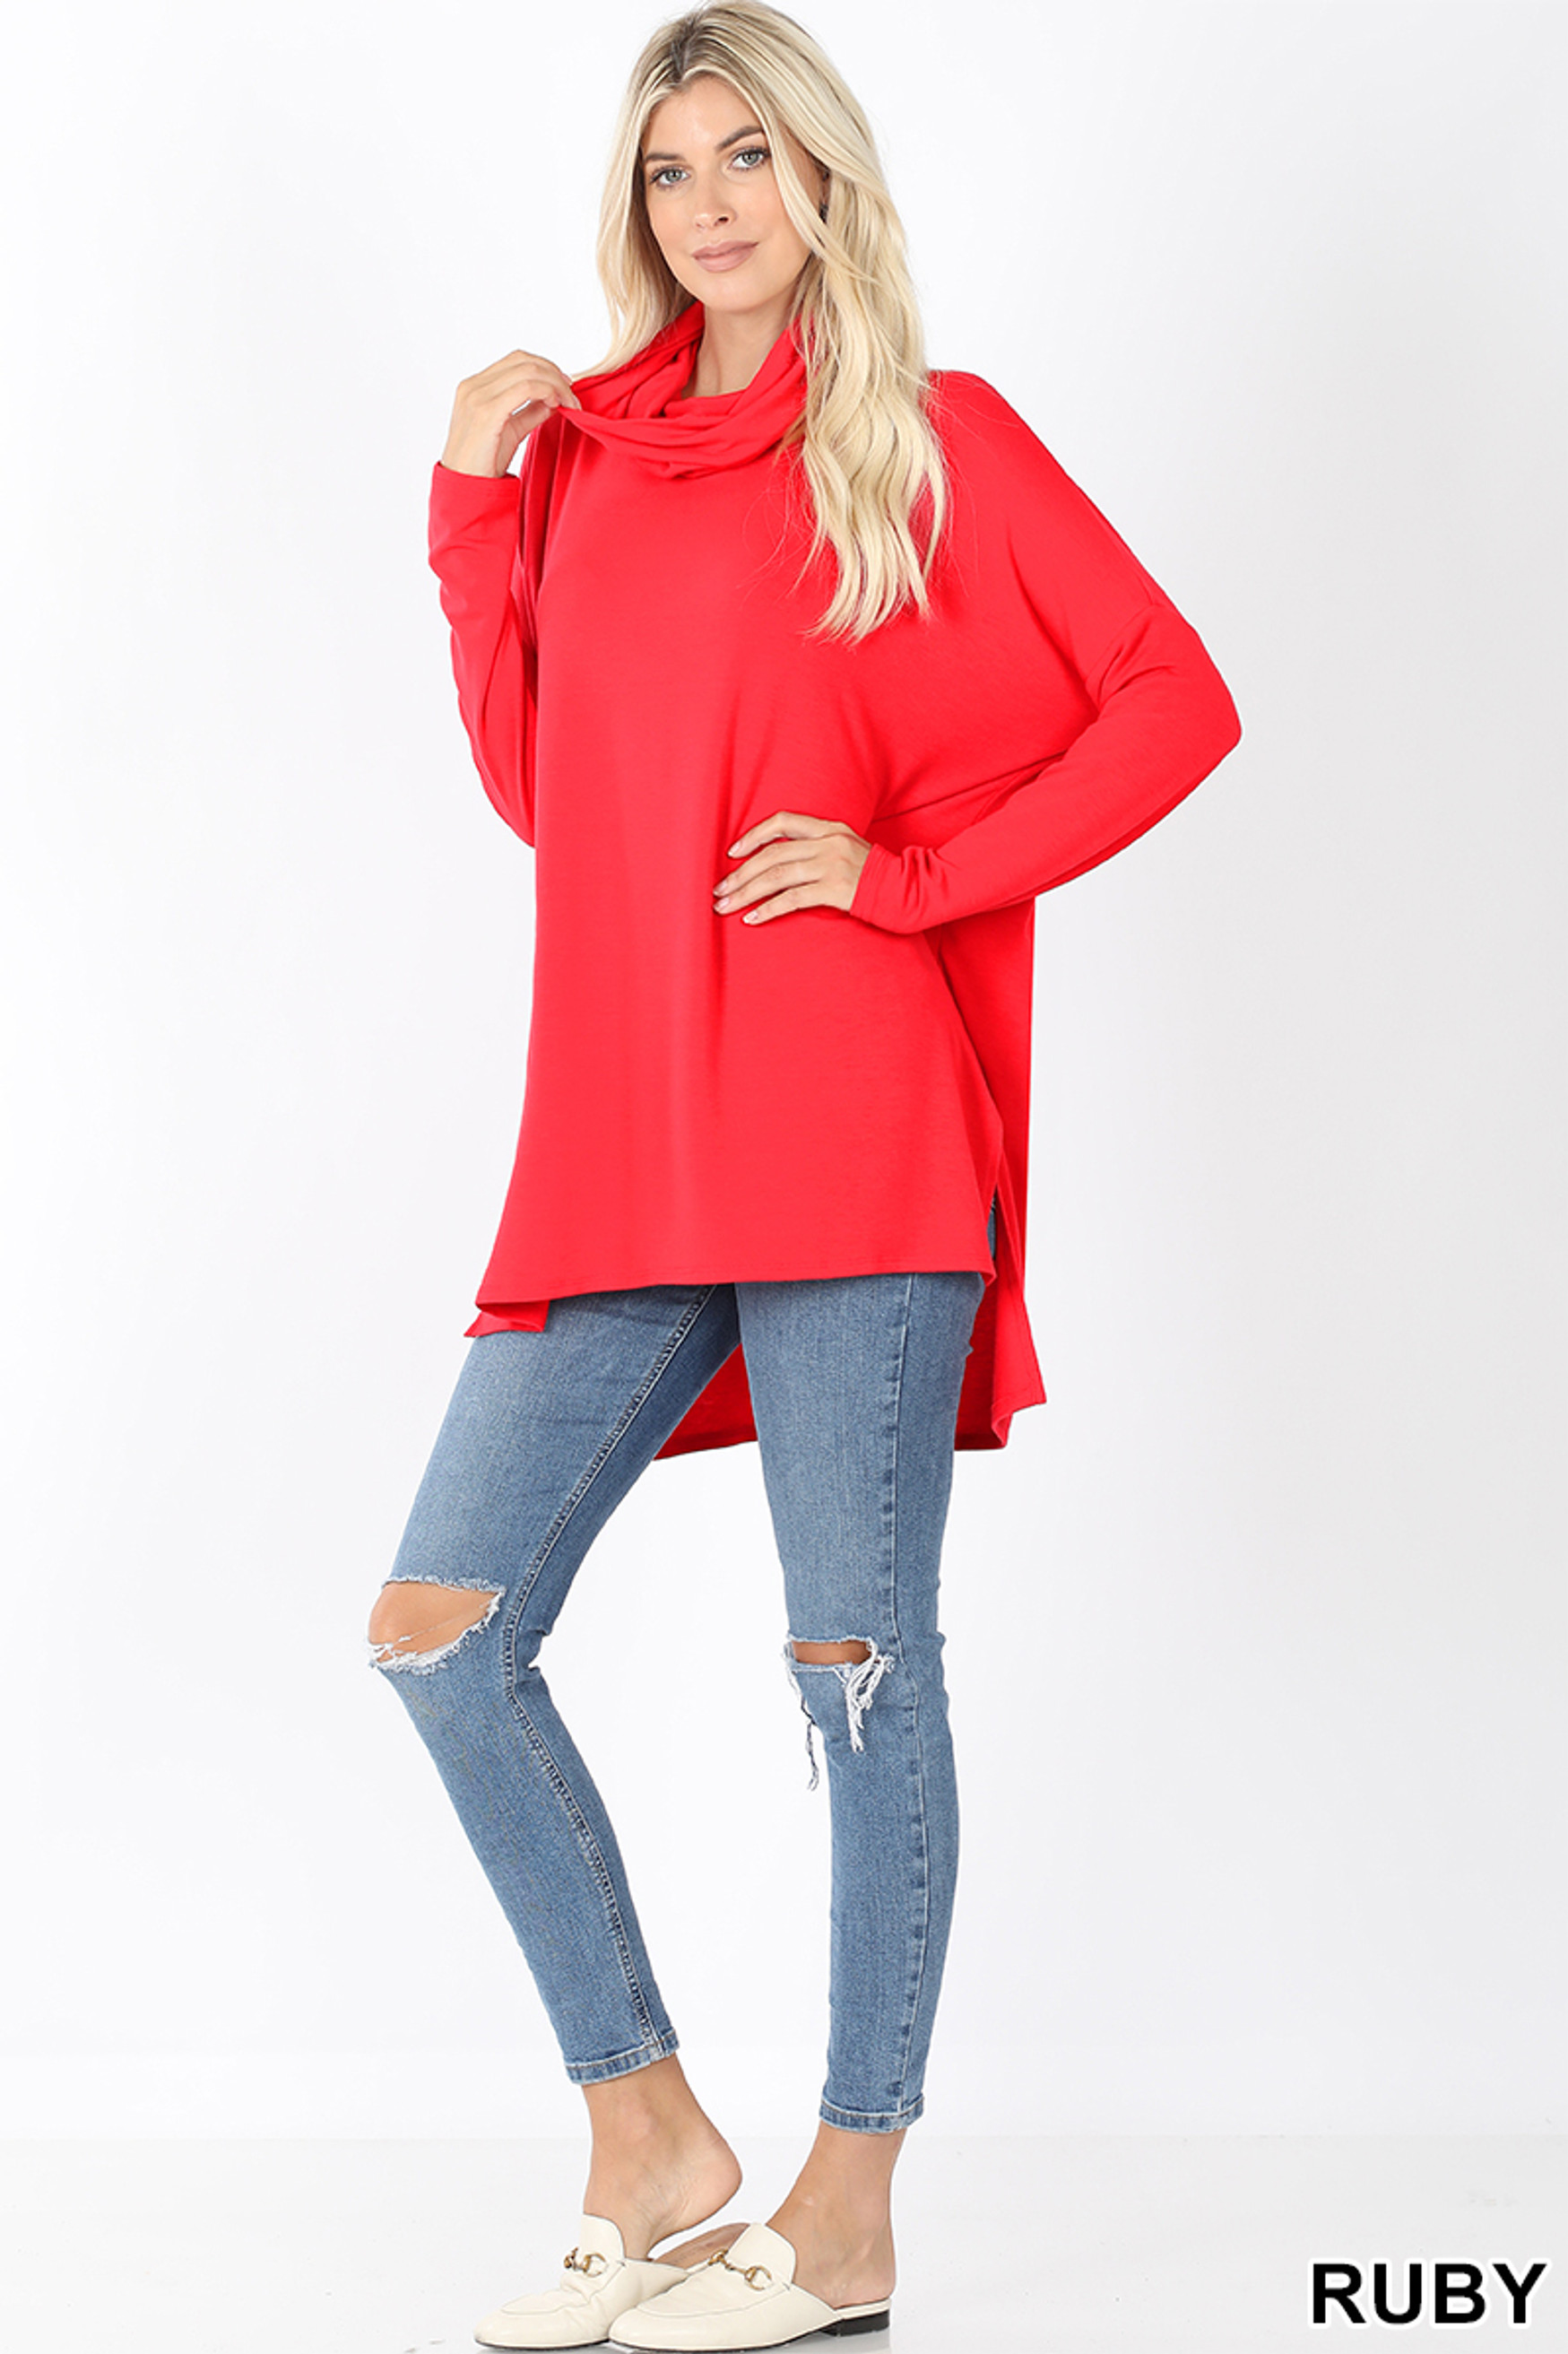 Full body front image of Ruby Cowl Neck Hi-Low Long Sleeve Plus Size Top